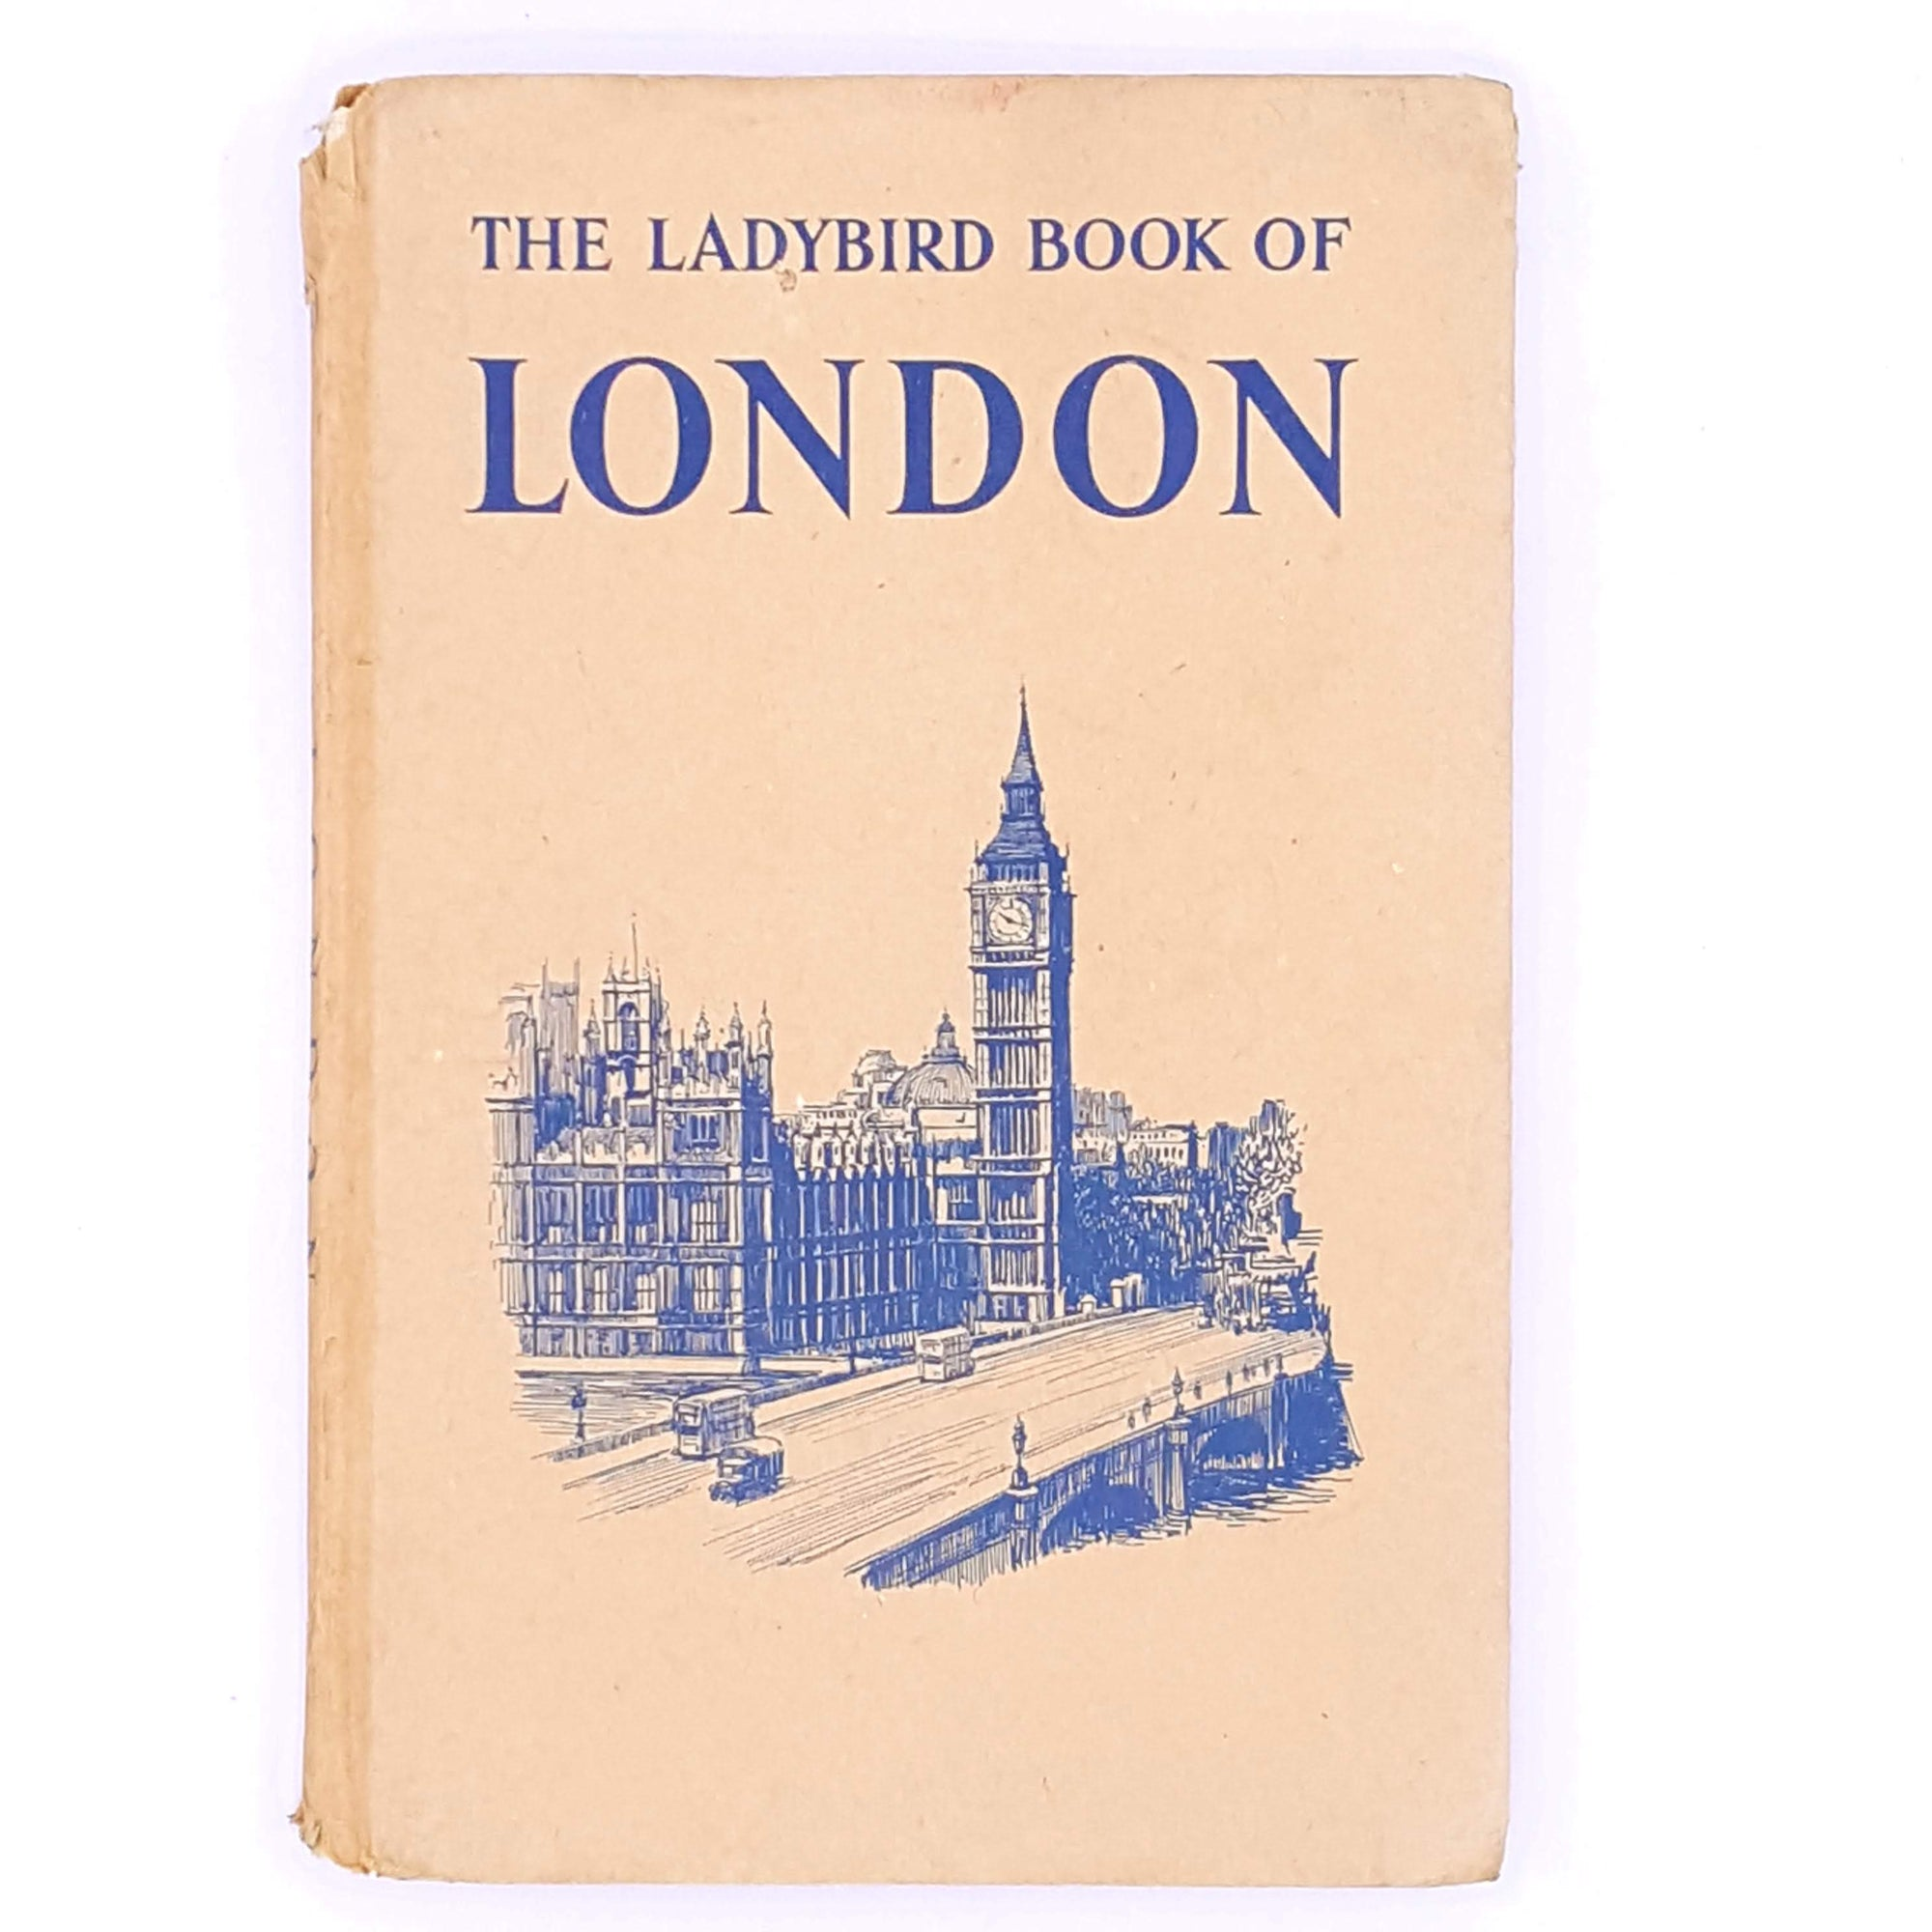 country-house-library-england-old-thrift-patterned-london-vintage-ladybird-books-classic-decorative-1961-antique-